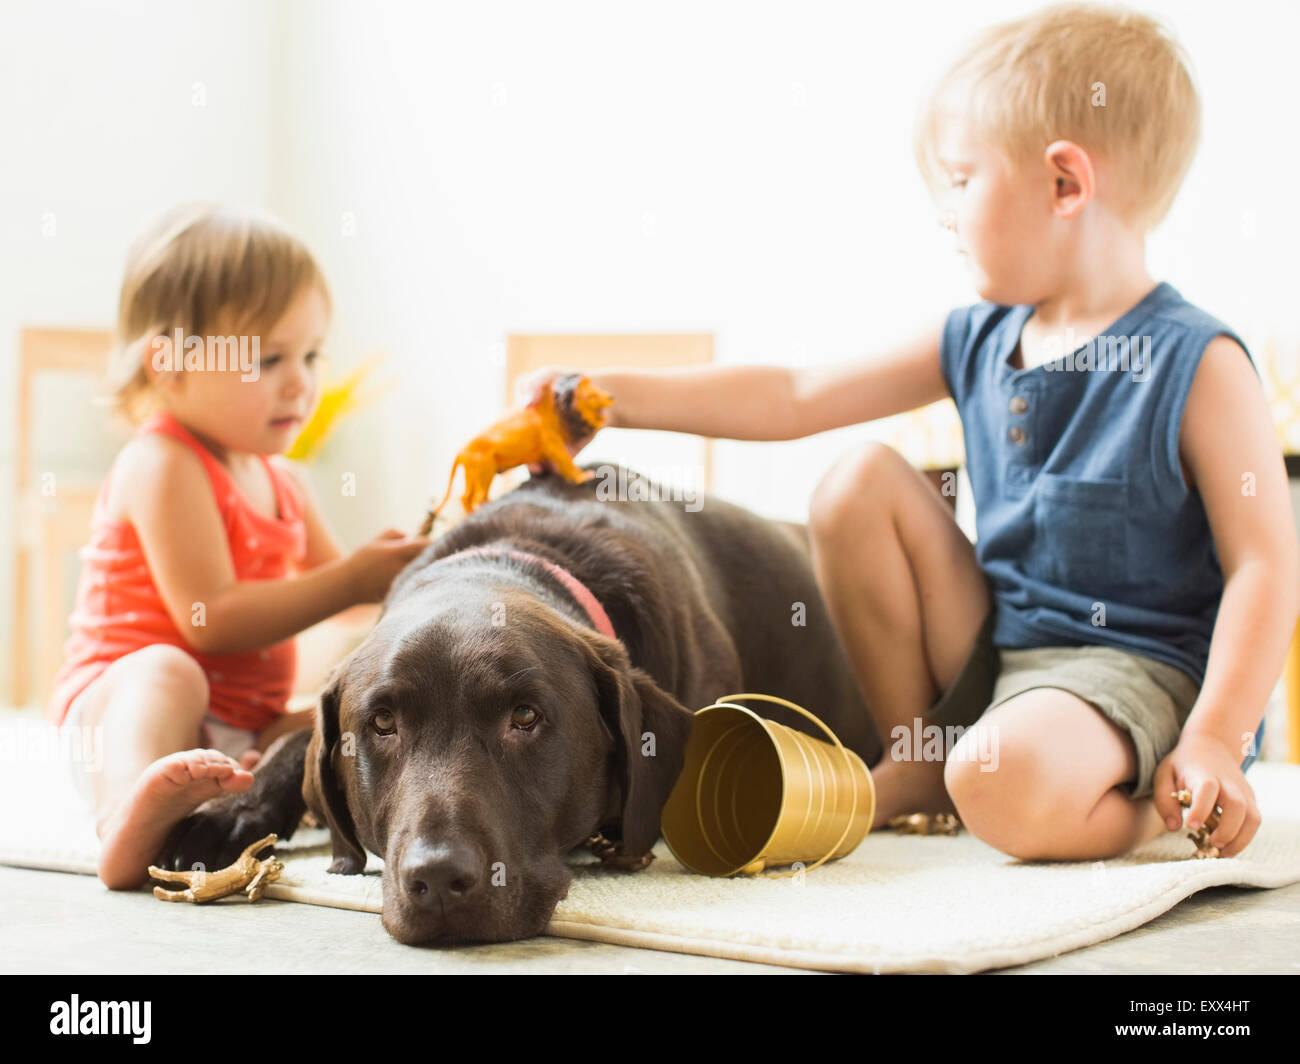 Children (2-3) playing with dog - Stock Image